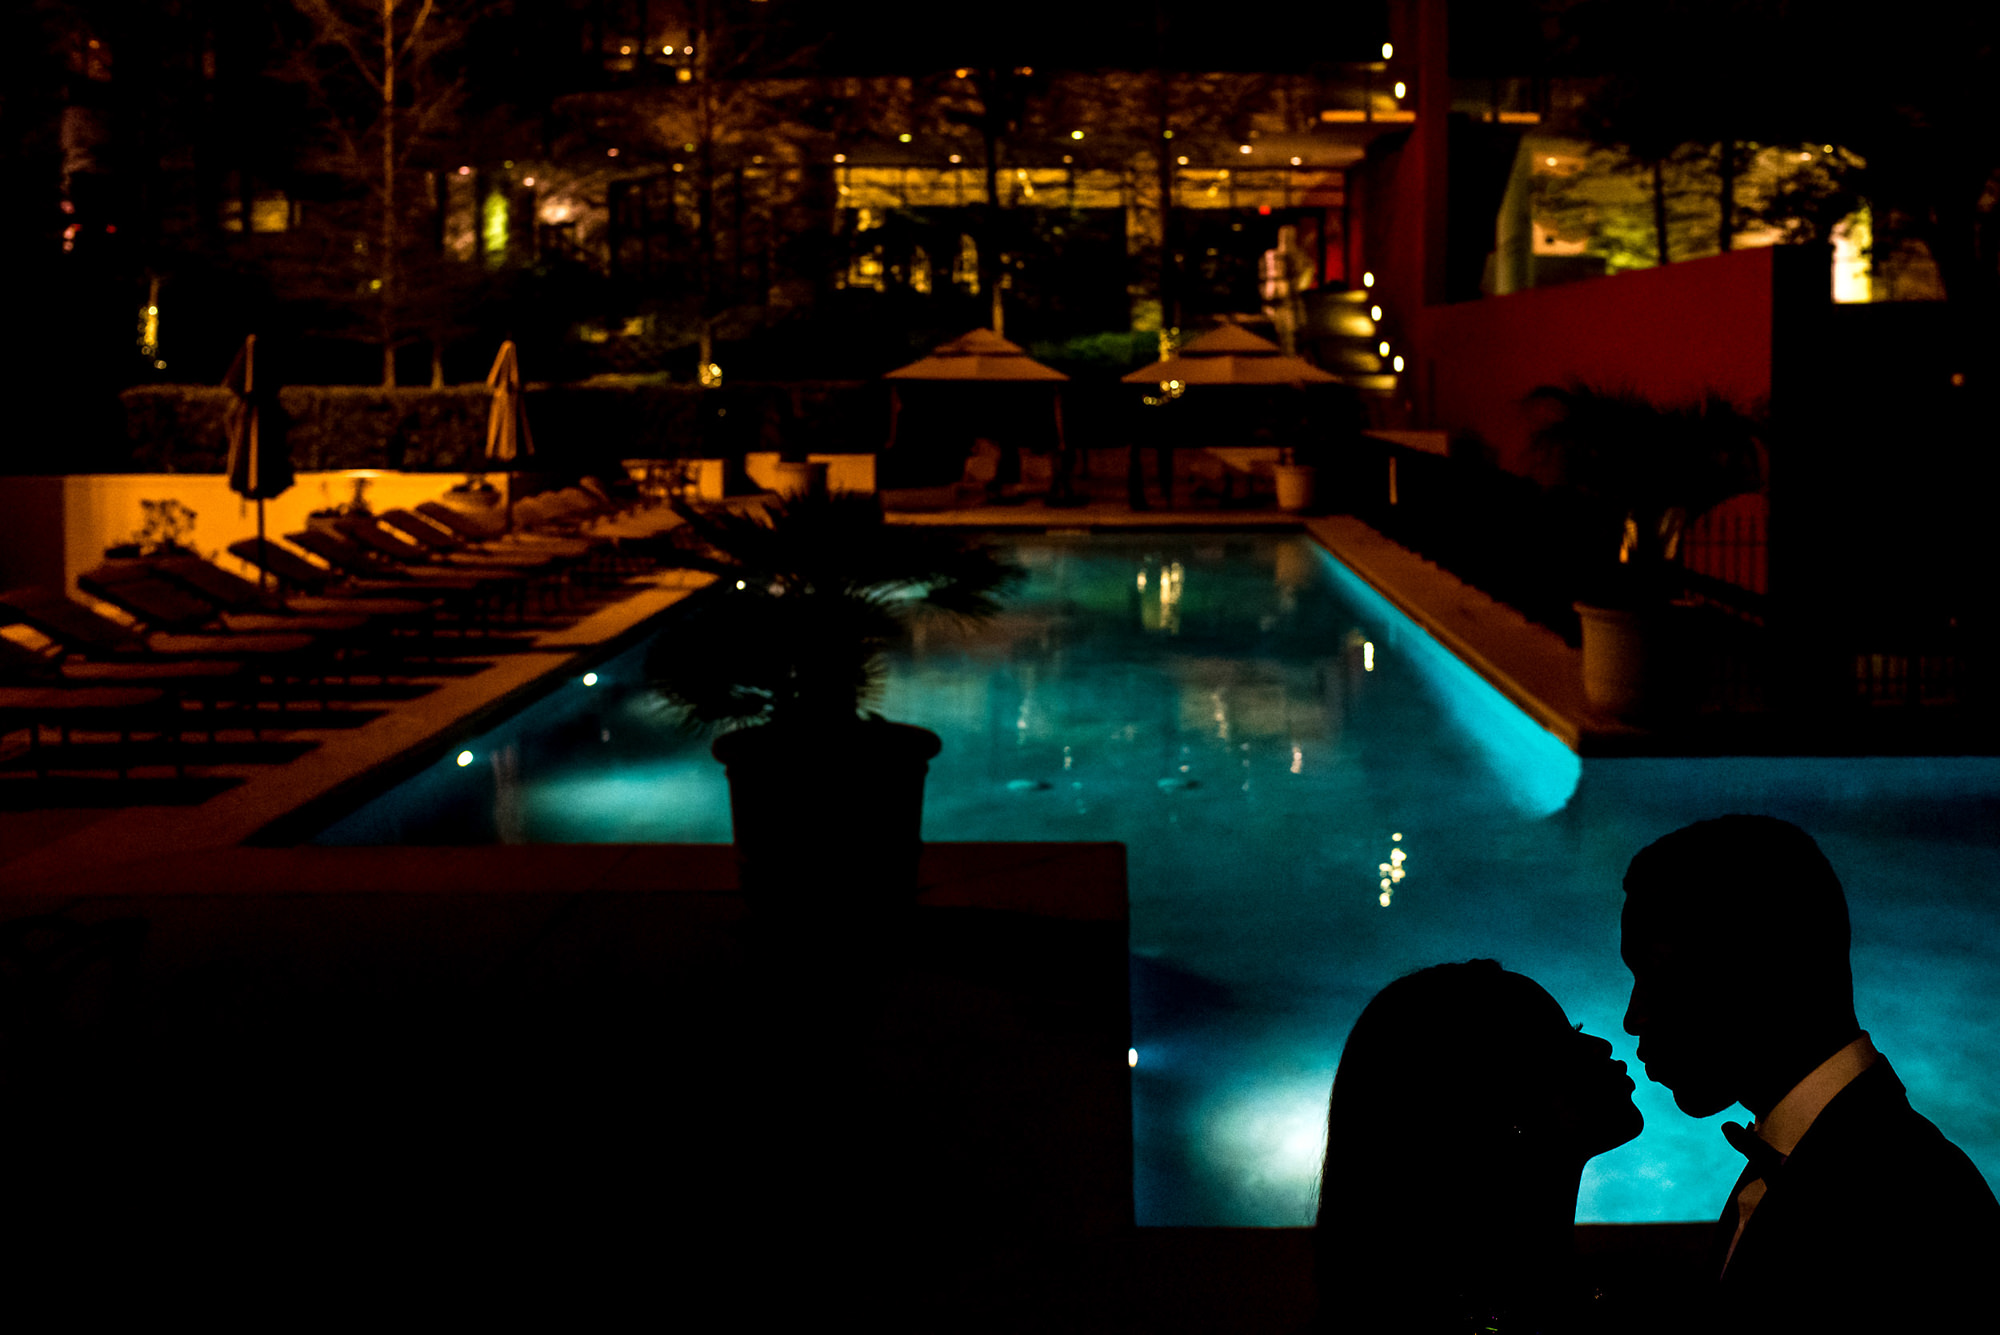 Couple silhouette by pool at night - photo by Alakija